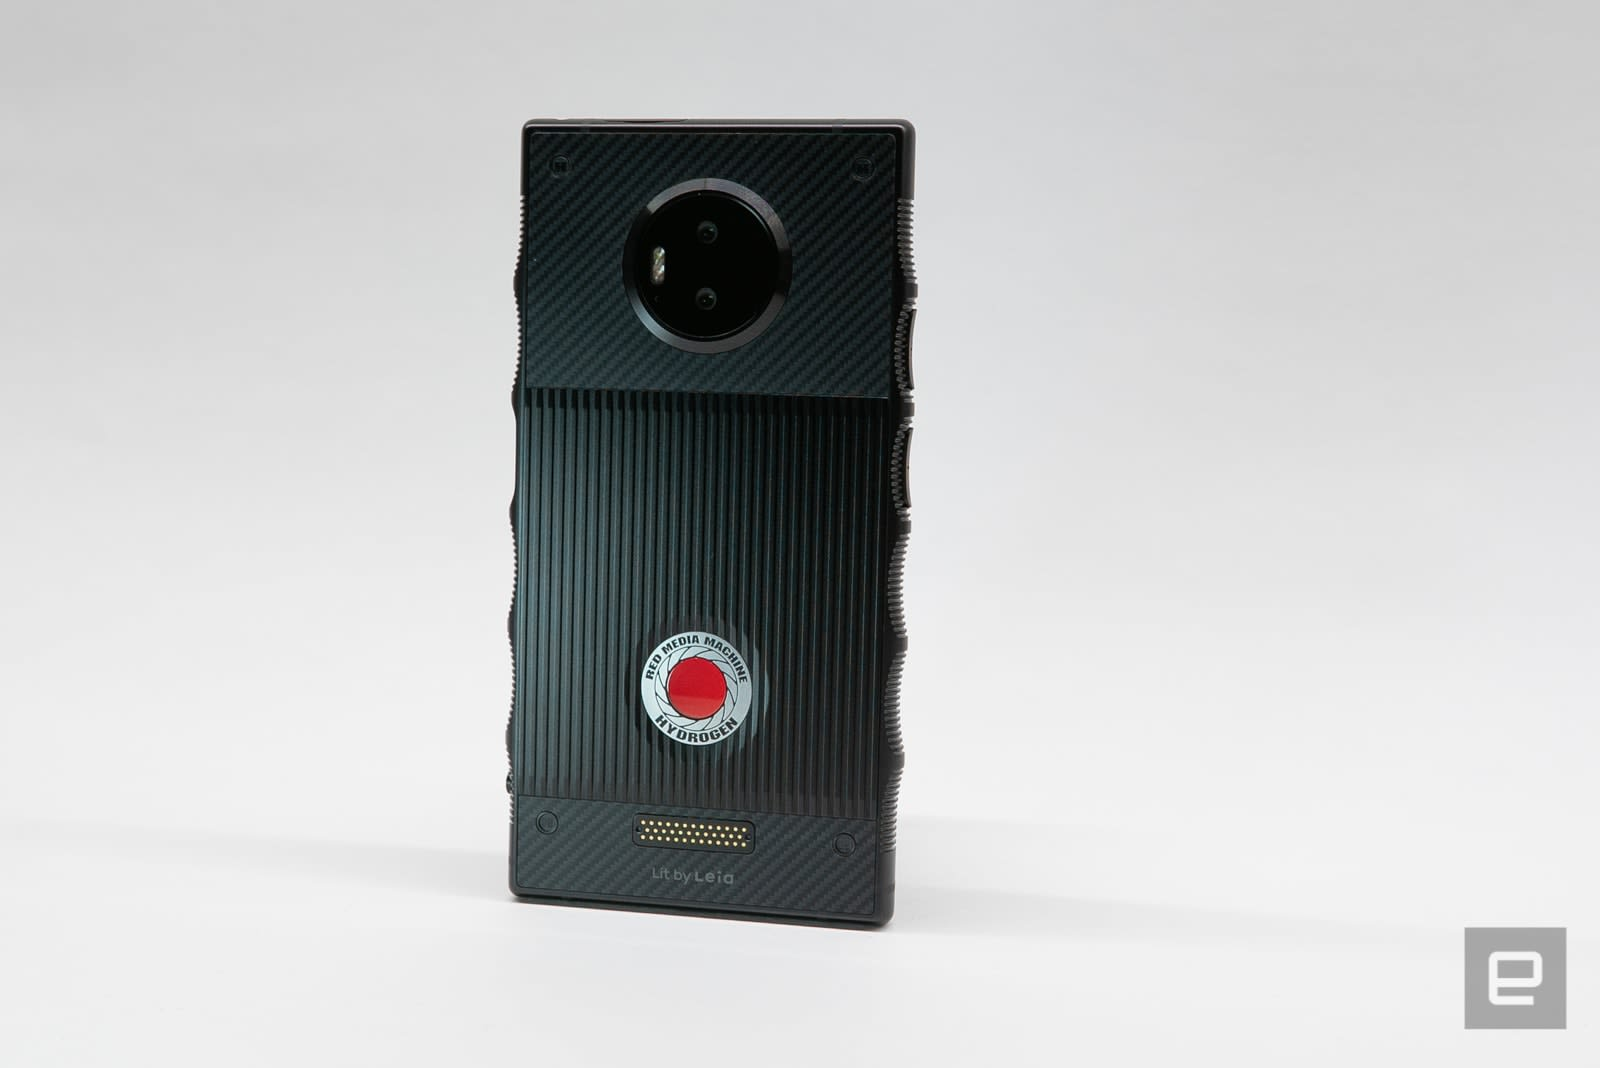 RED Hydrogen One review: Mediocre cameraphone, extraordinary